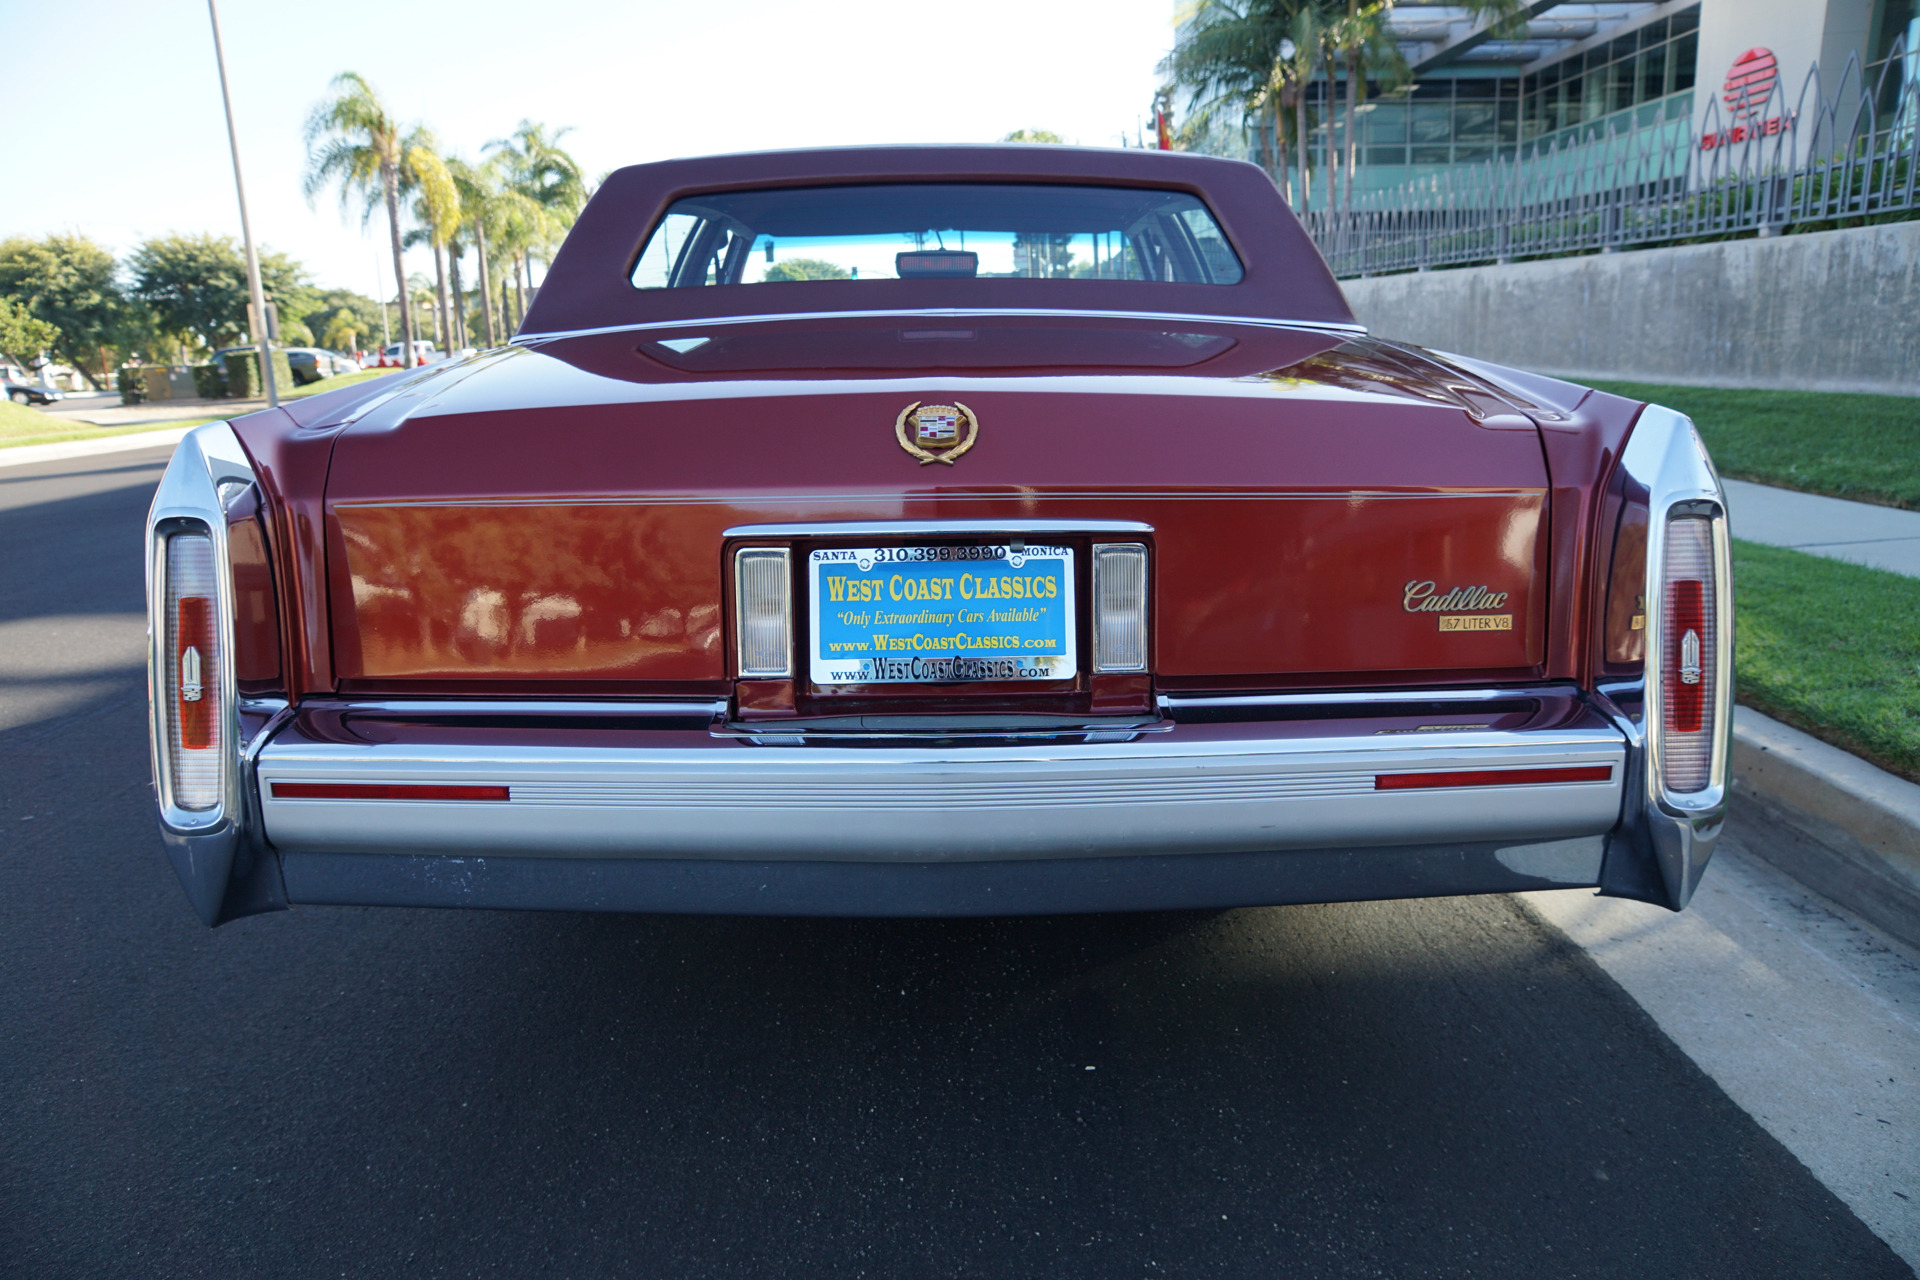 1991 Cadillac Brougham D'Elegance Stock # 026 for sale near